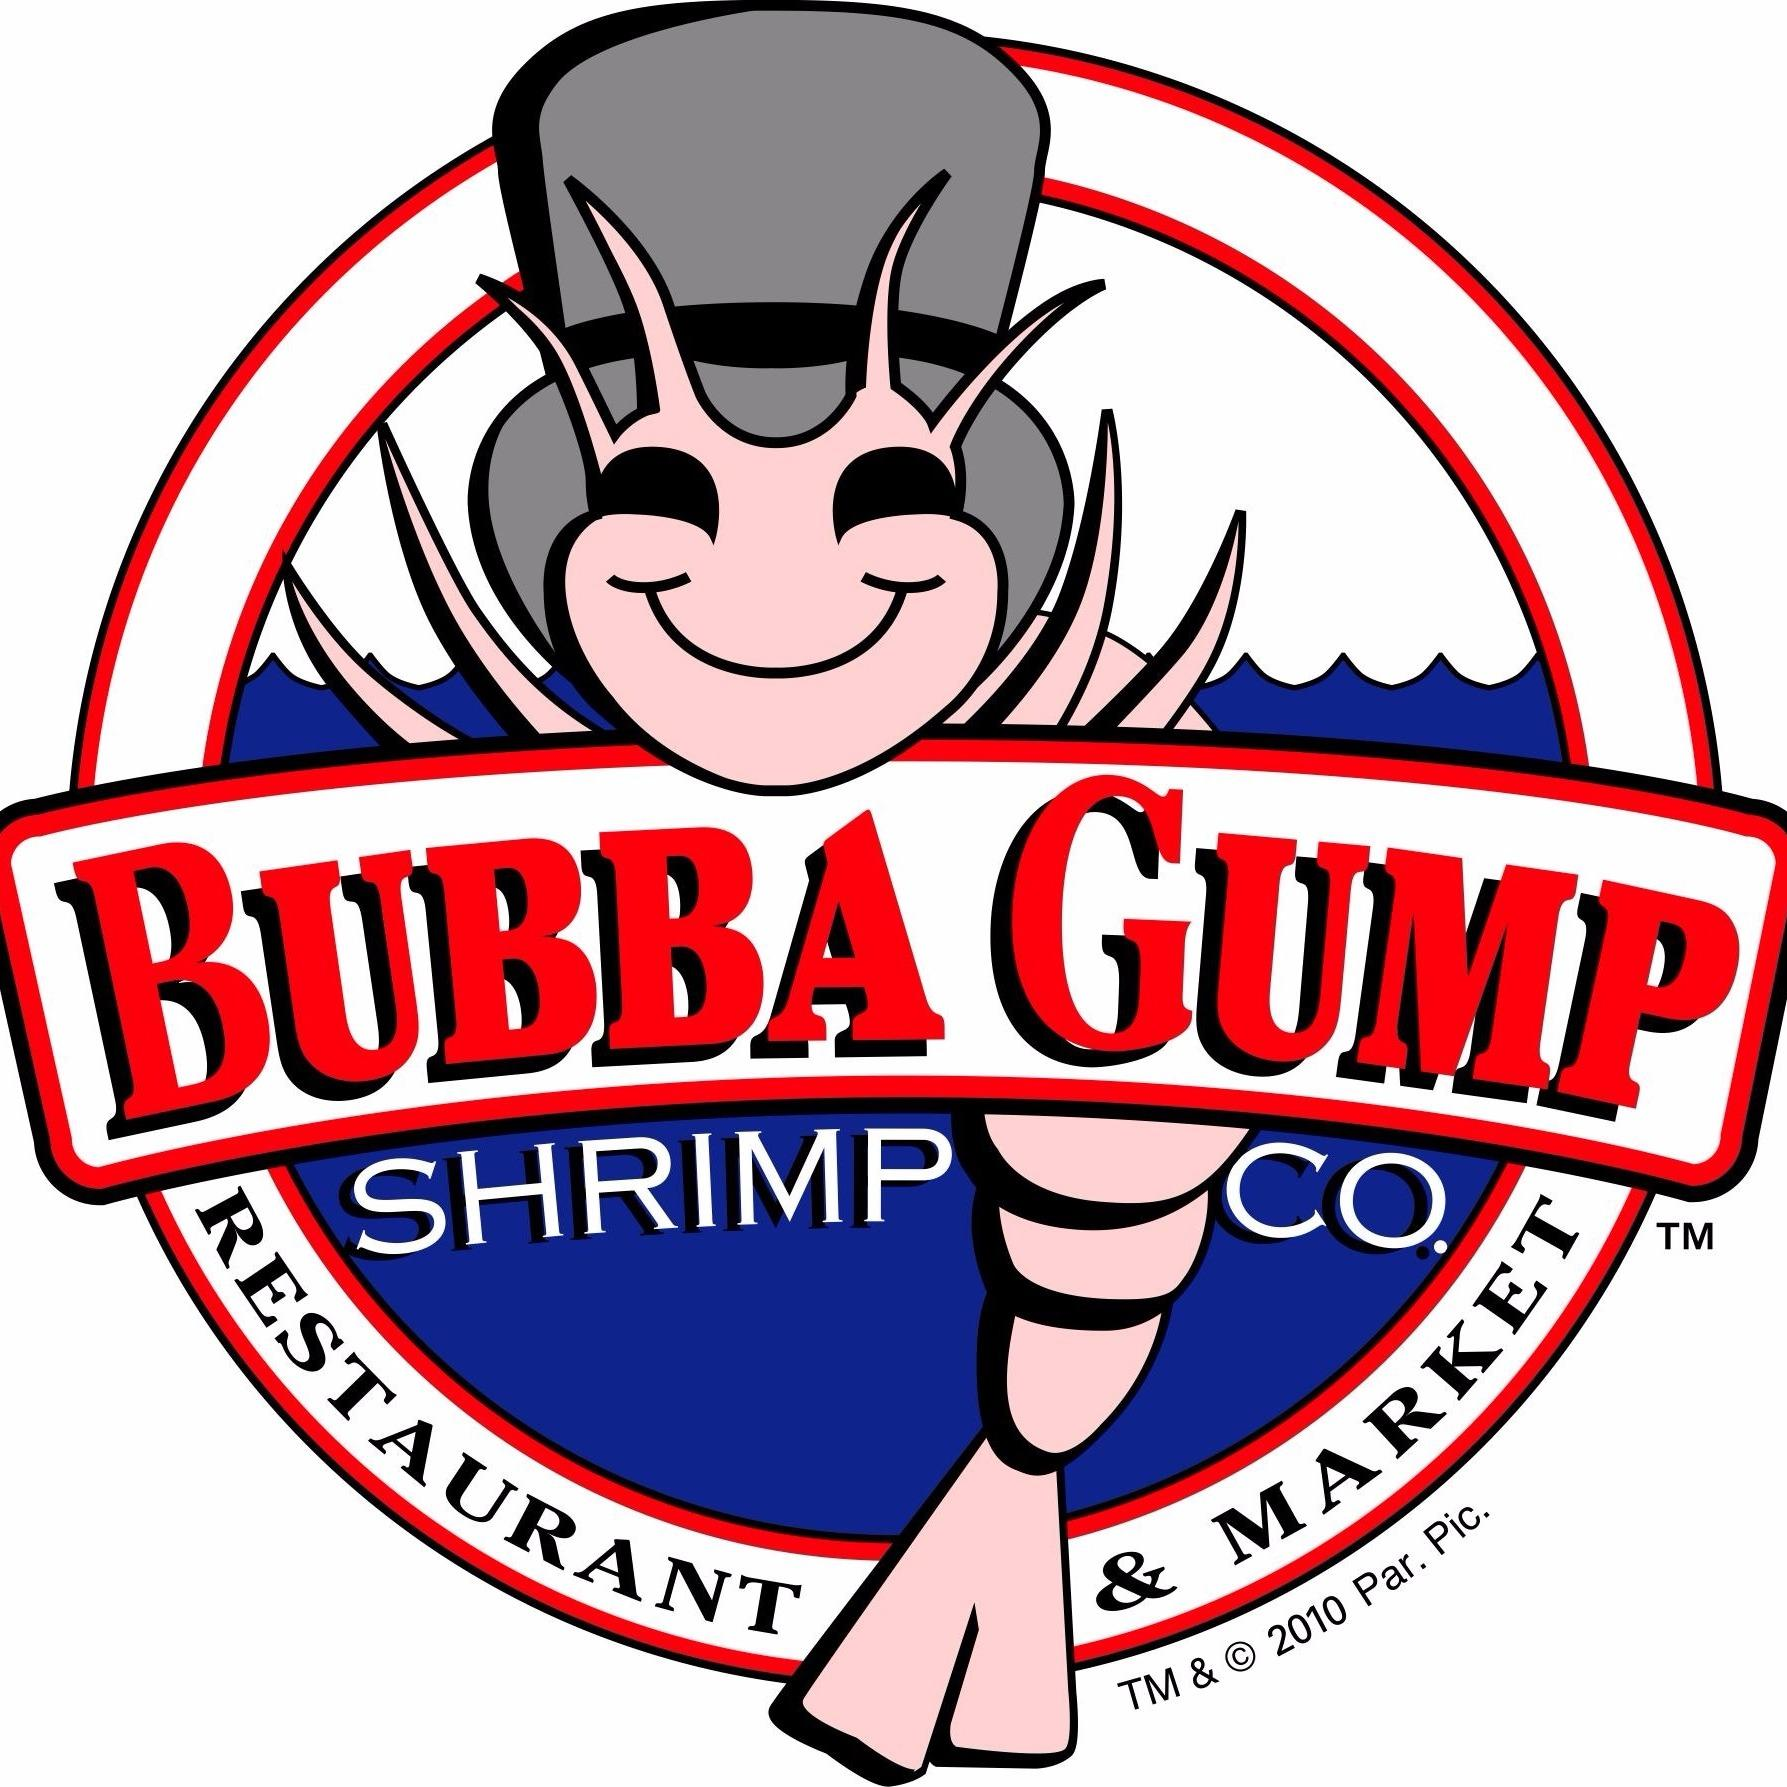 Bubba Gump Shrimp Co. image 15